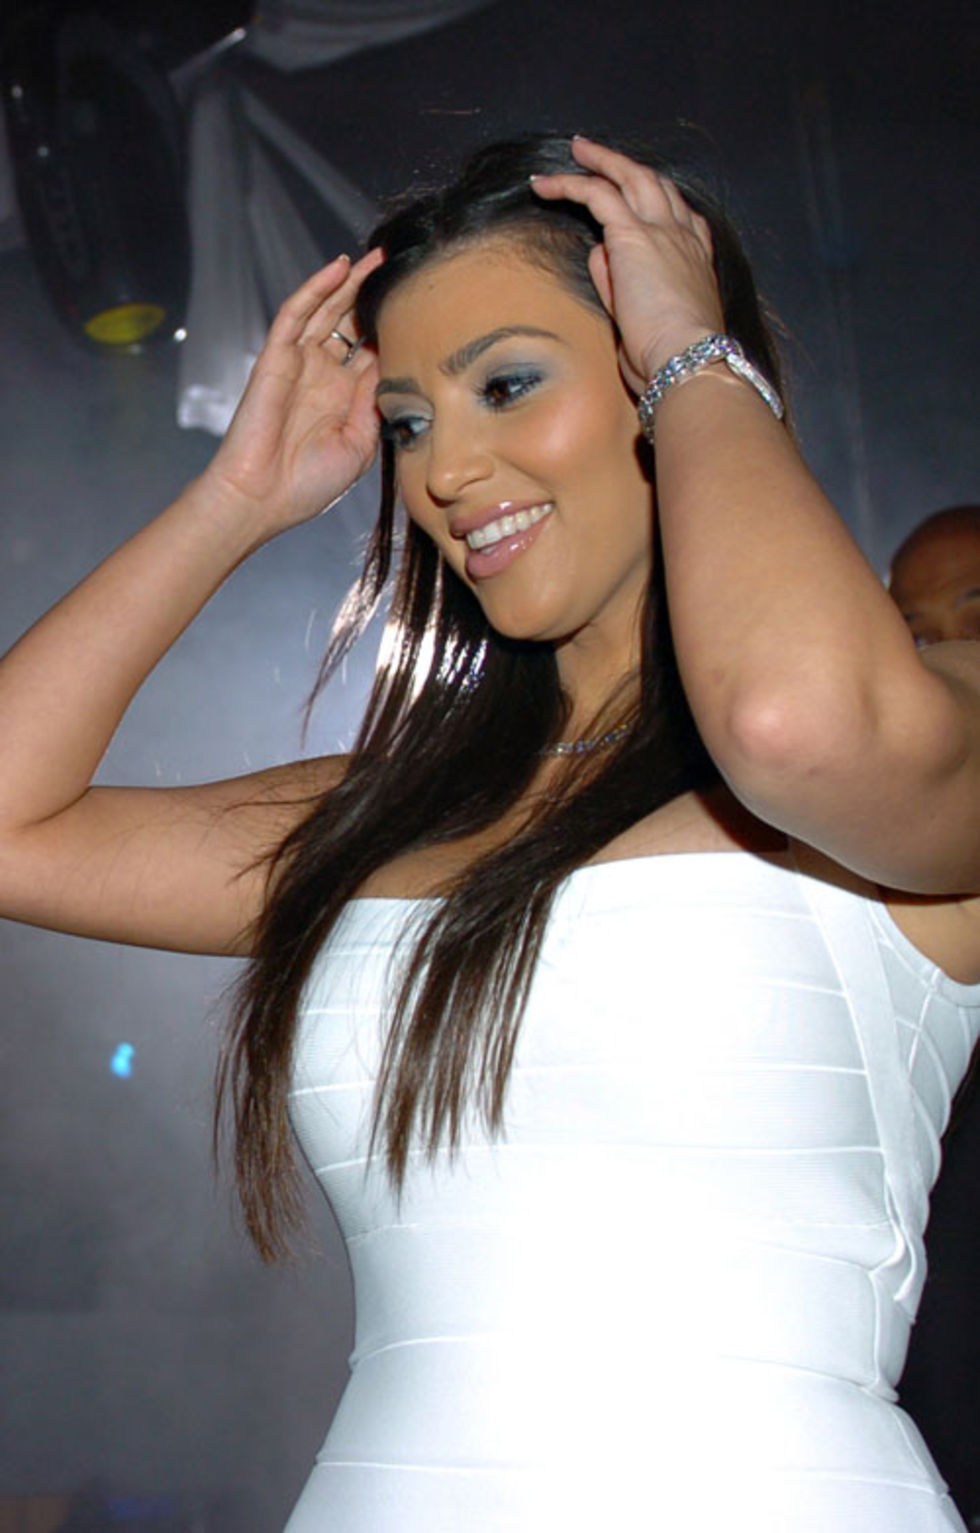 kim-kardashian-at-the-whitehouse-nightclub-in-hampton-mq-01